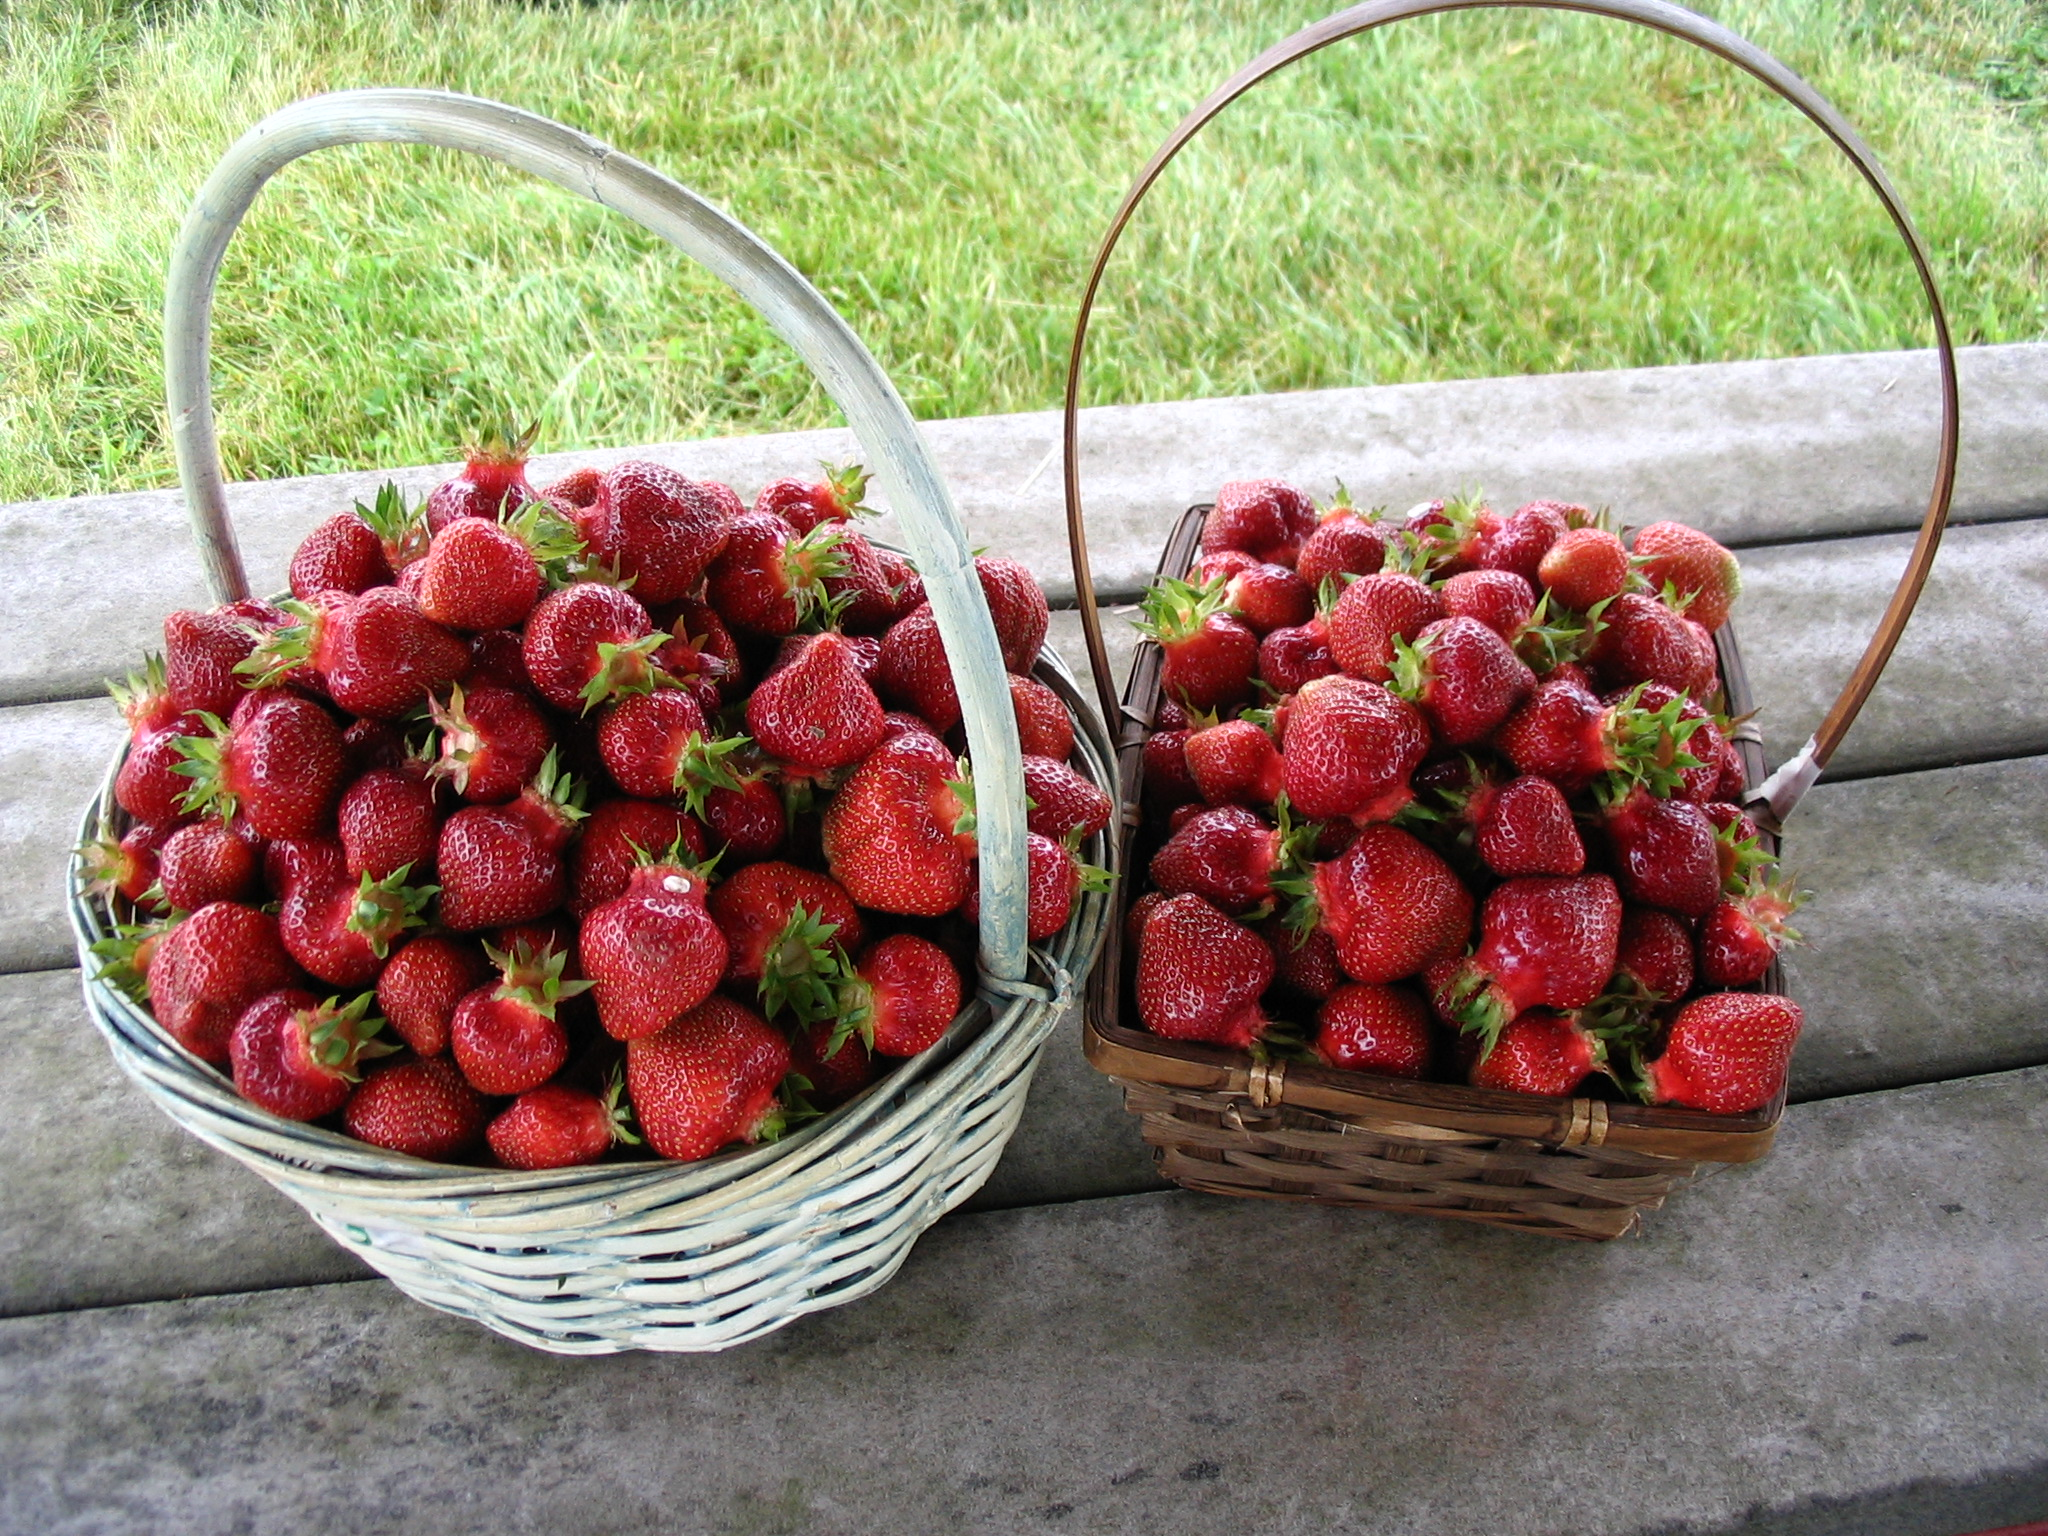 Pick-your-own Fresh Strawberries